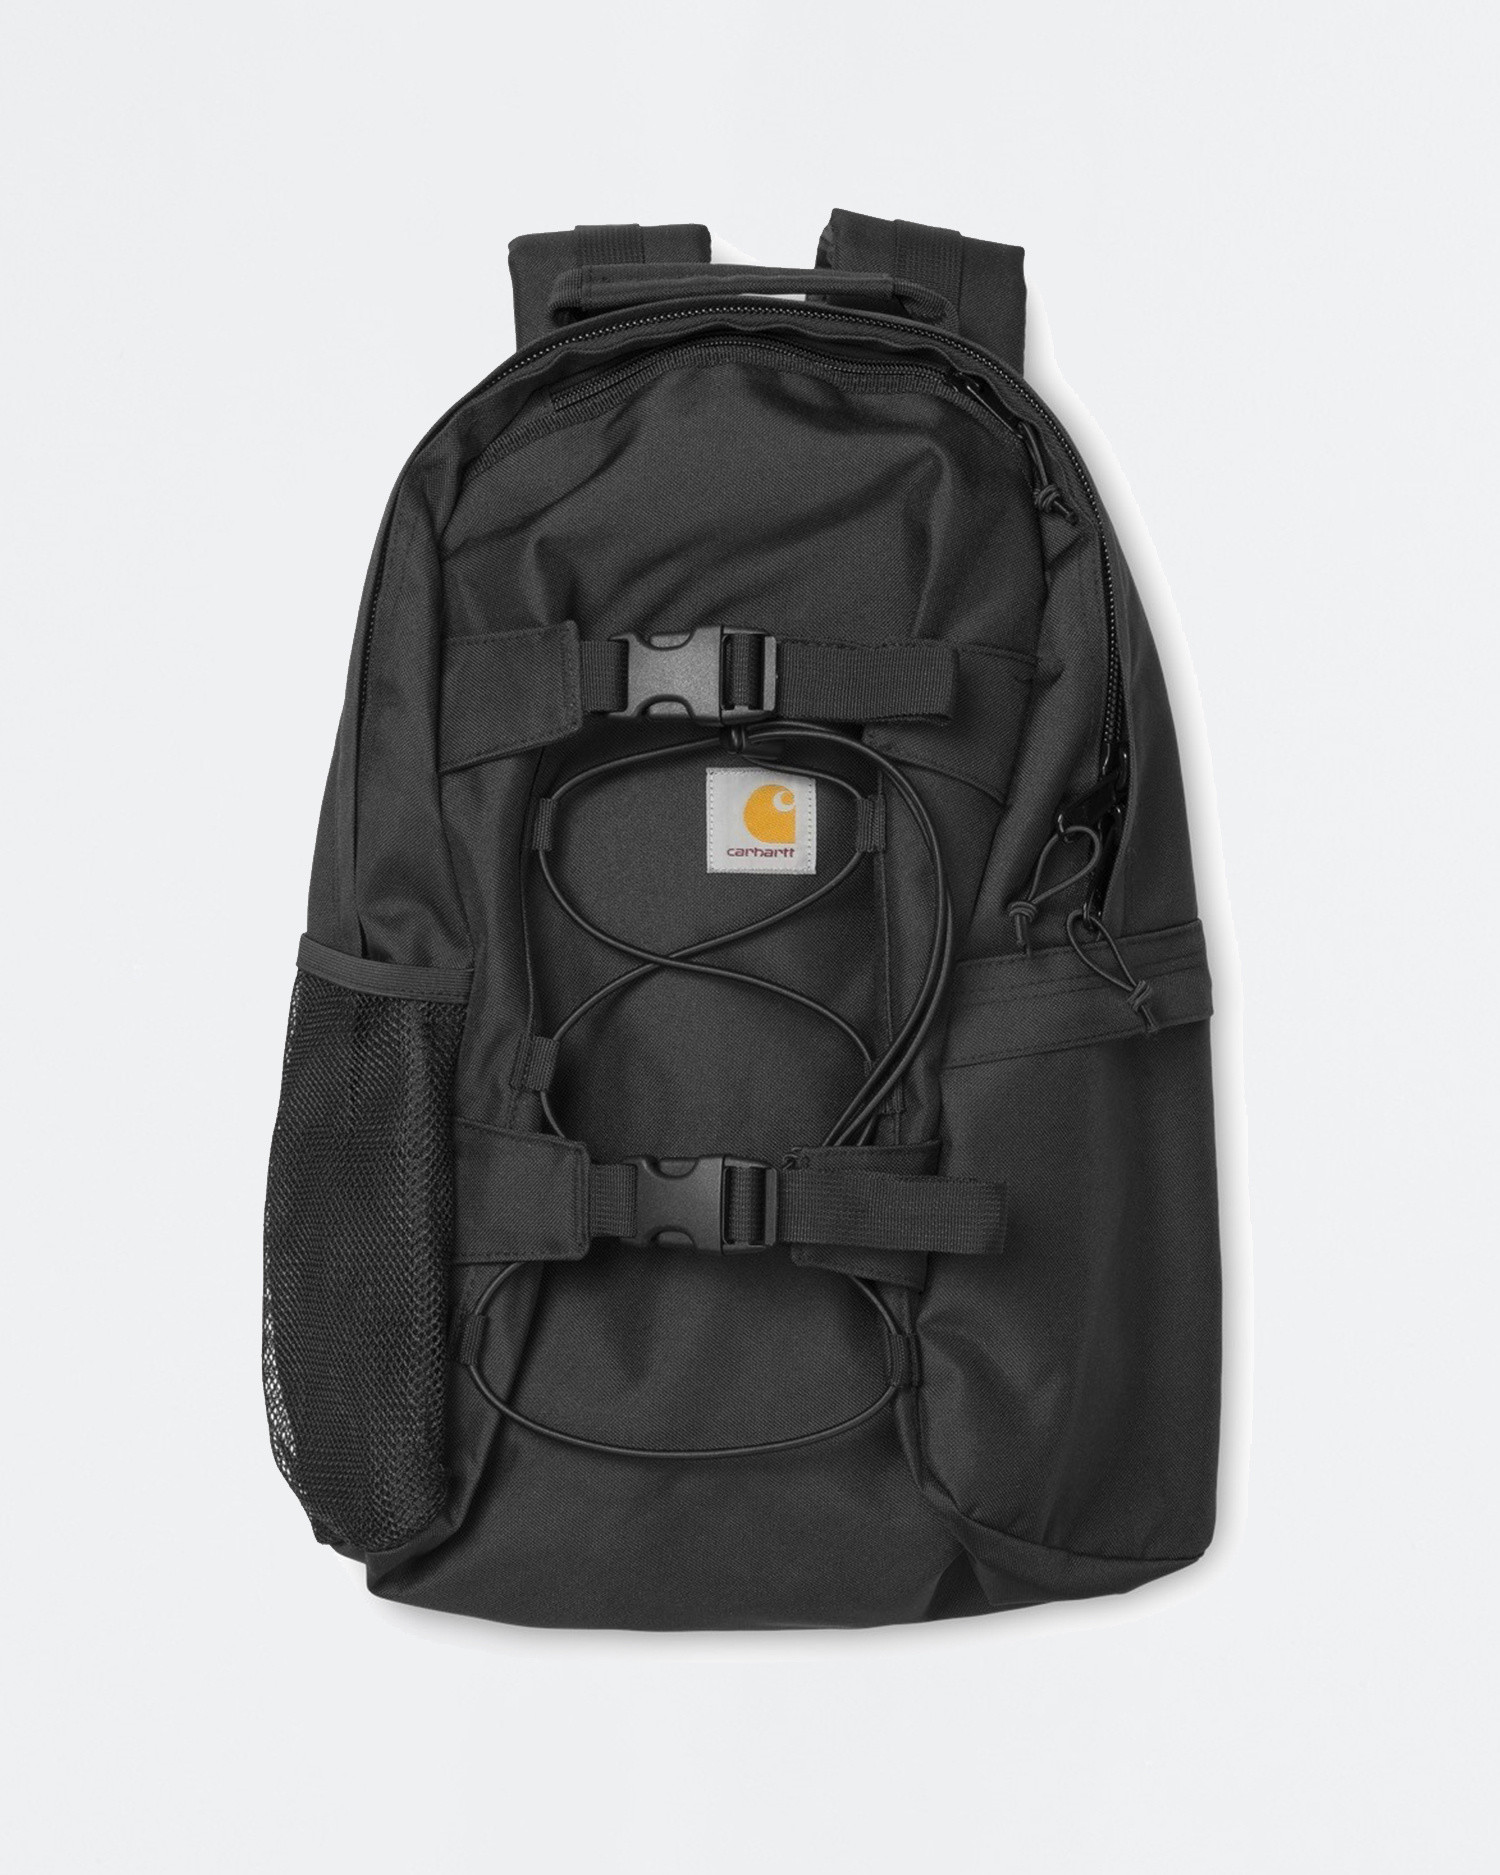 buying now factory outlet discount sale Carhartt Kickflip Backpack Black